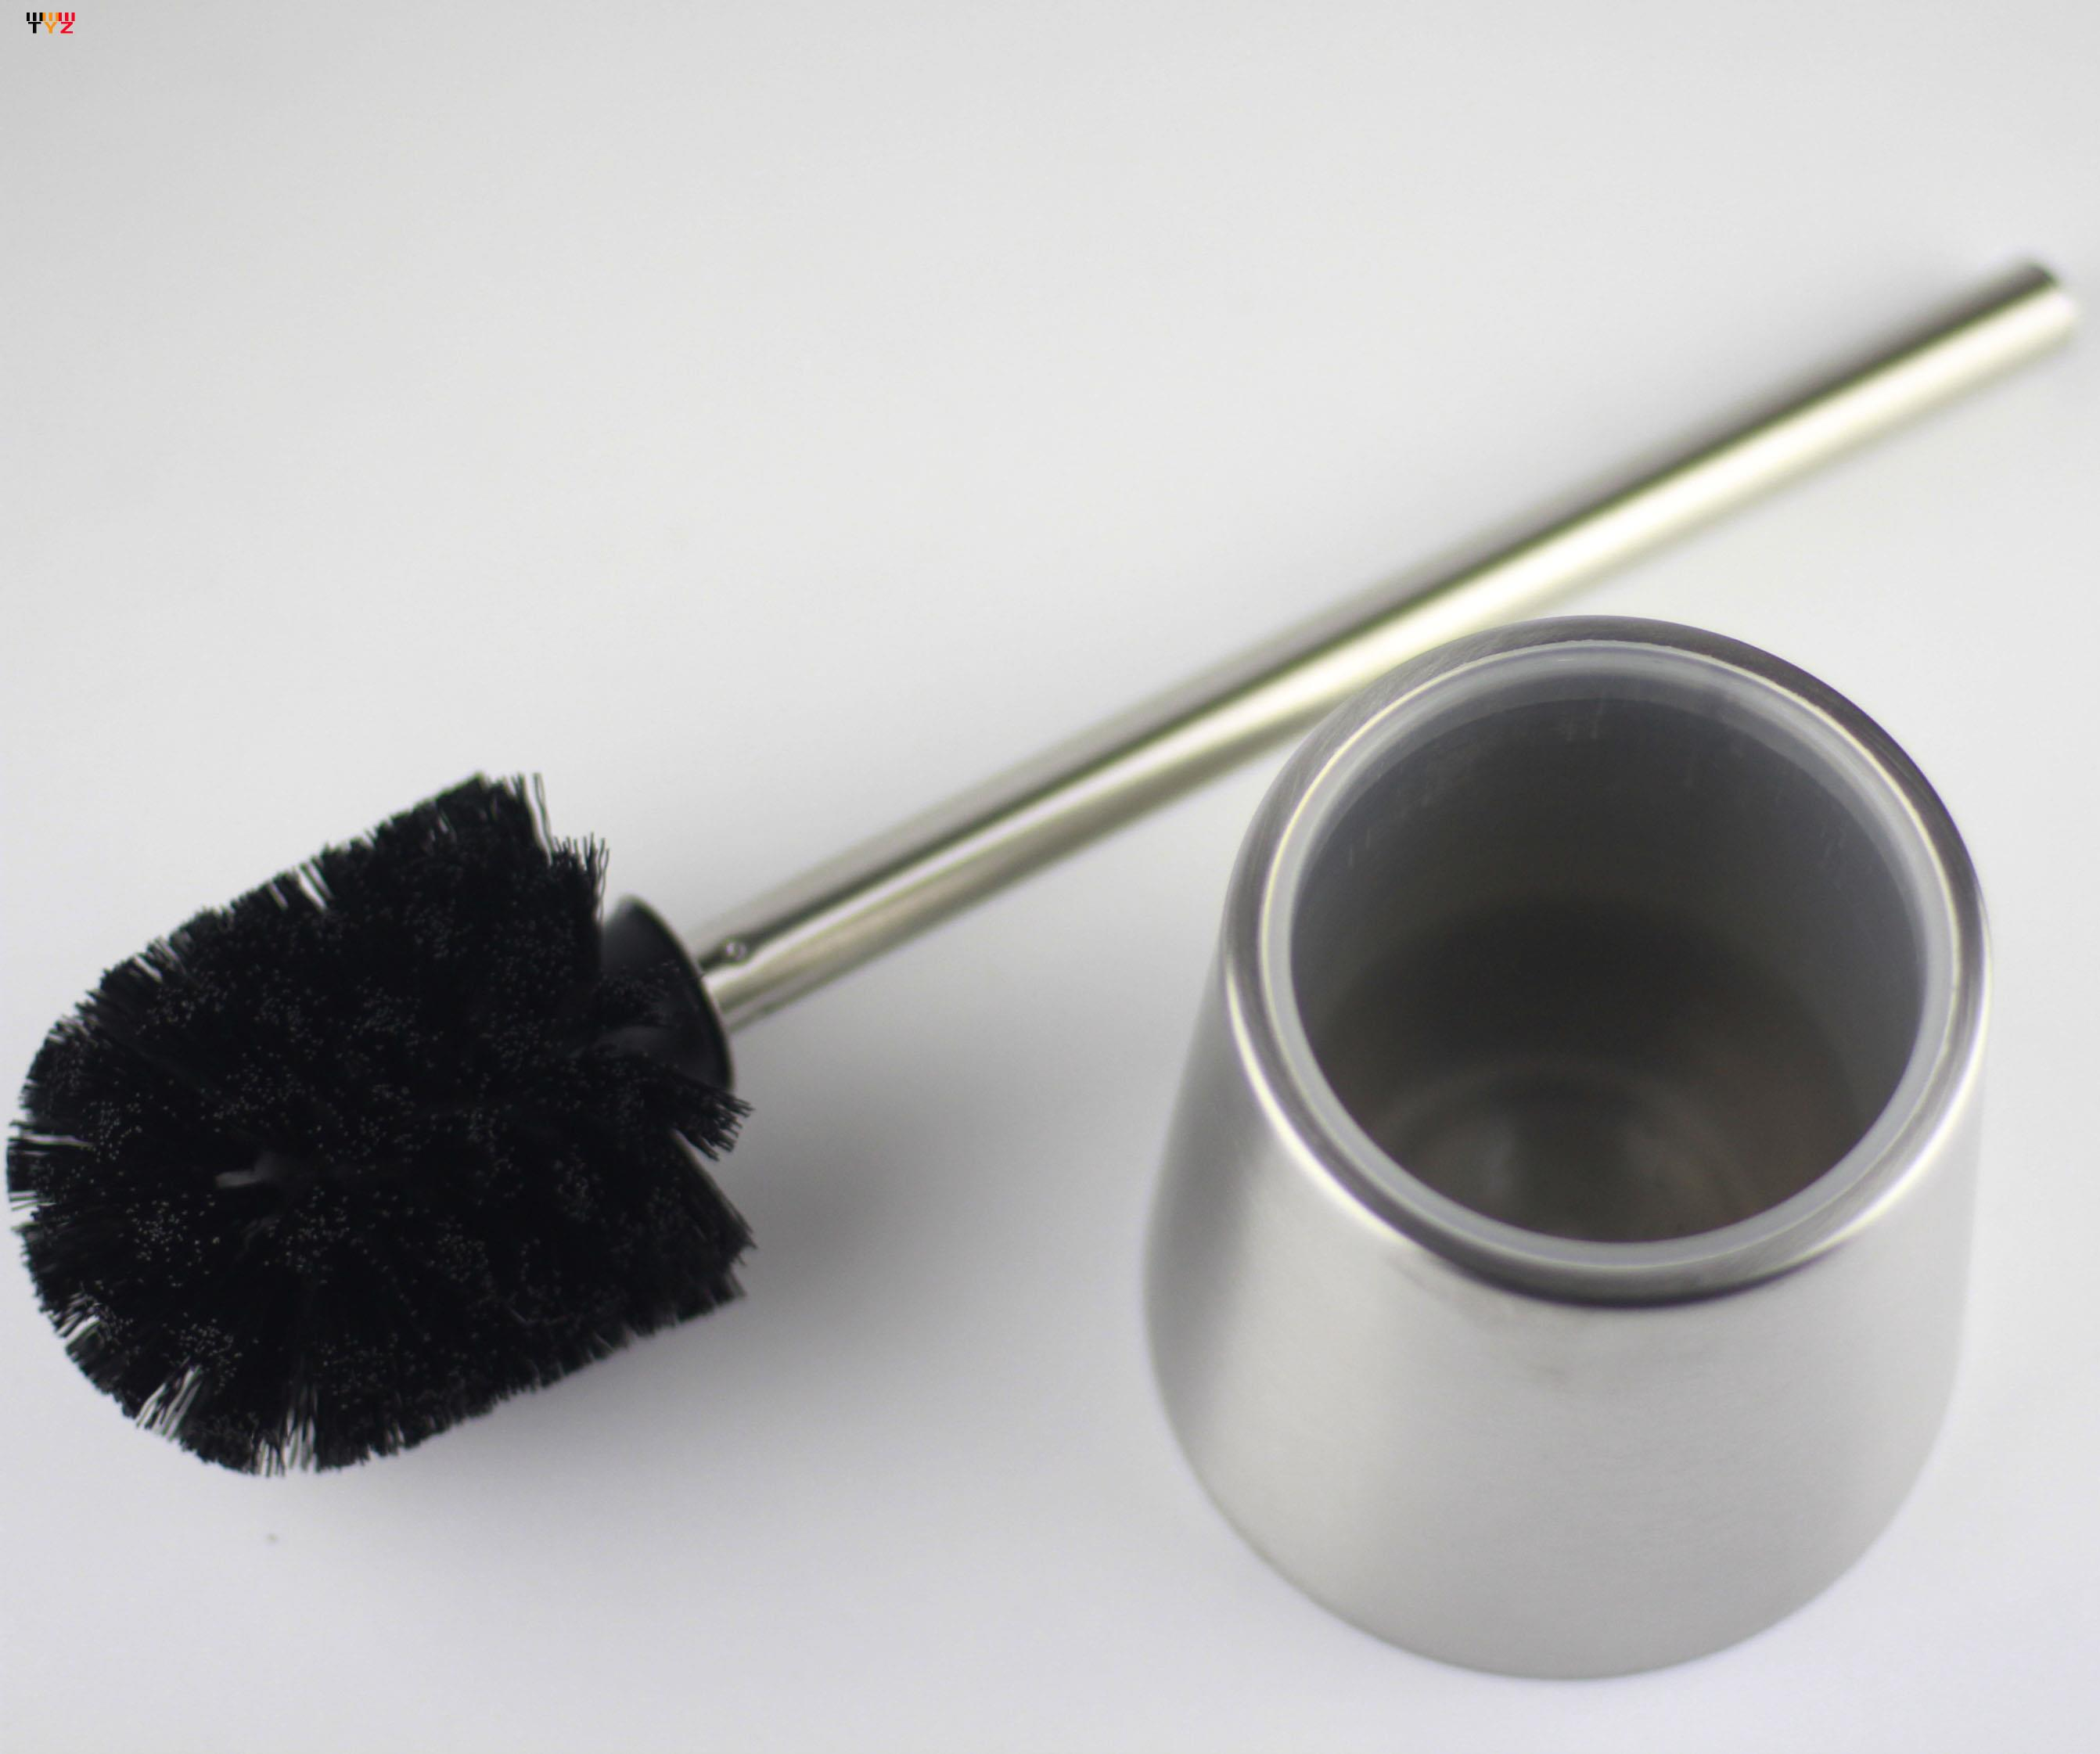 Stainless Steel Toilet Cleaning Toilet Brush Bathroom Cleaning Brush Bathroom Supplies